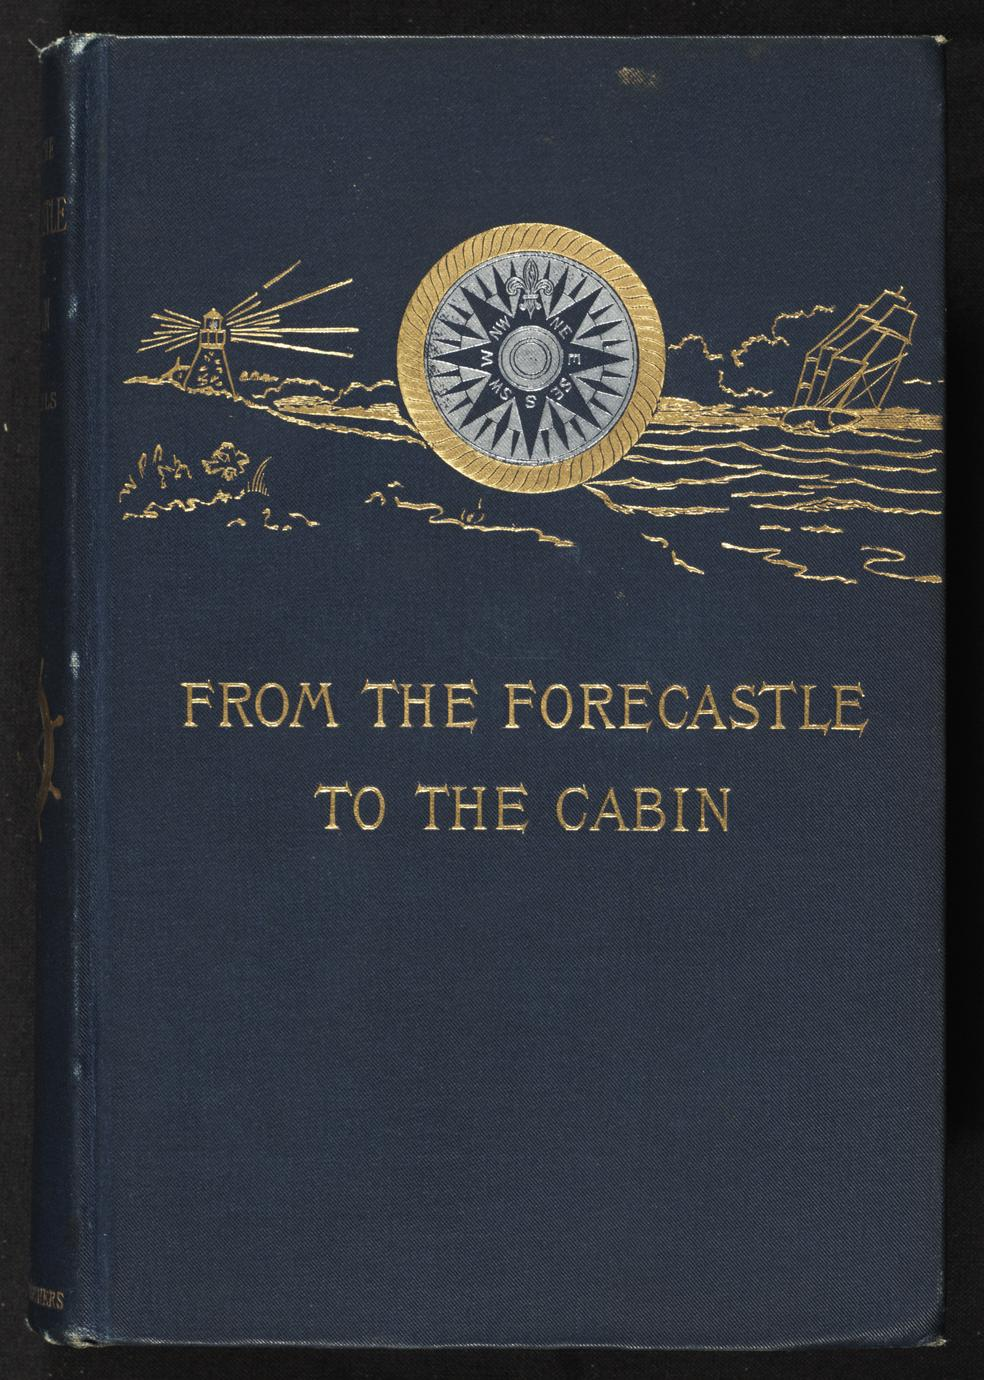 From the forecastle to the cabin (1 of 3)